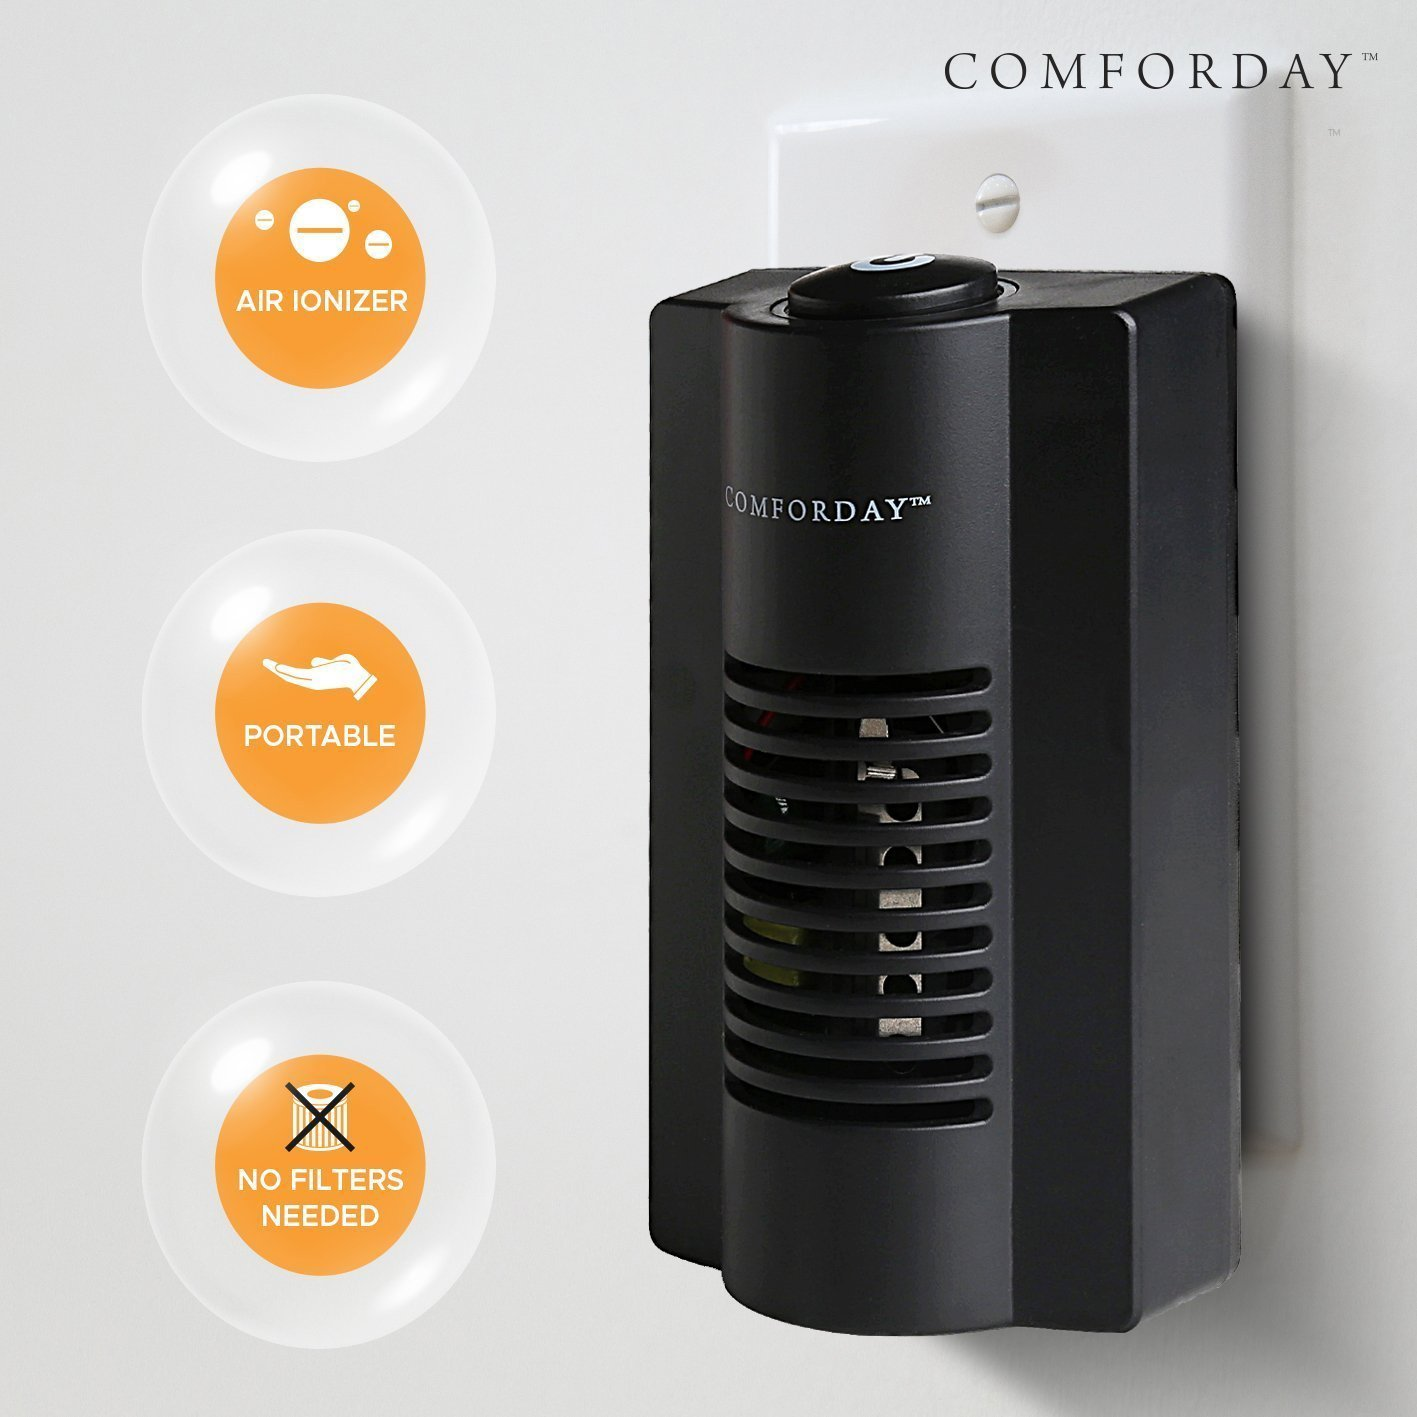 Comforday 2-in-1 Indoor Ionic Air Purifier - Plug-in Odor Eliminator, Air Sanitizer and Odor Reducer with Night Light